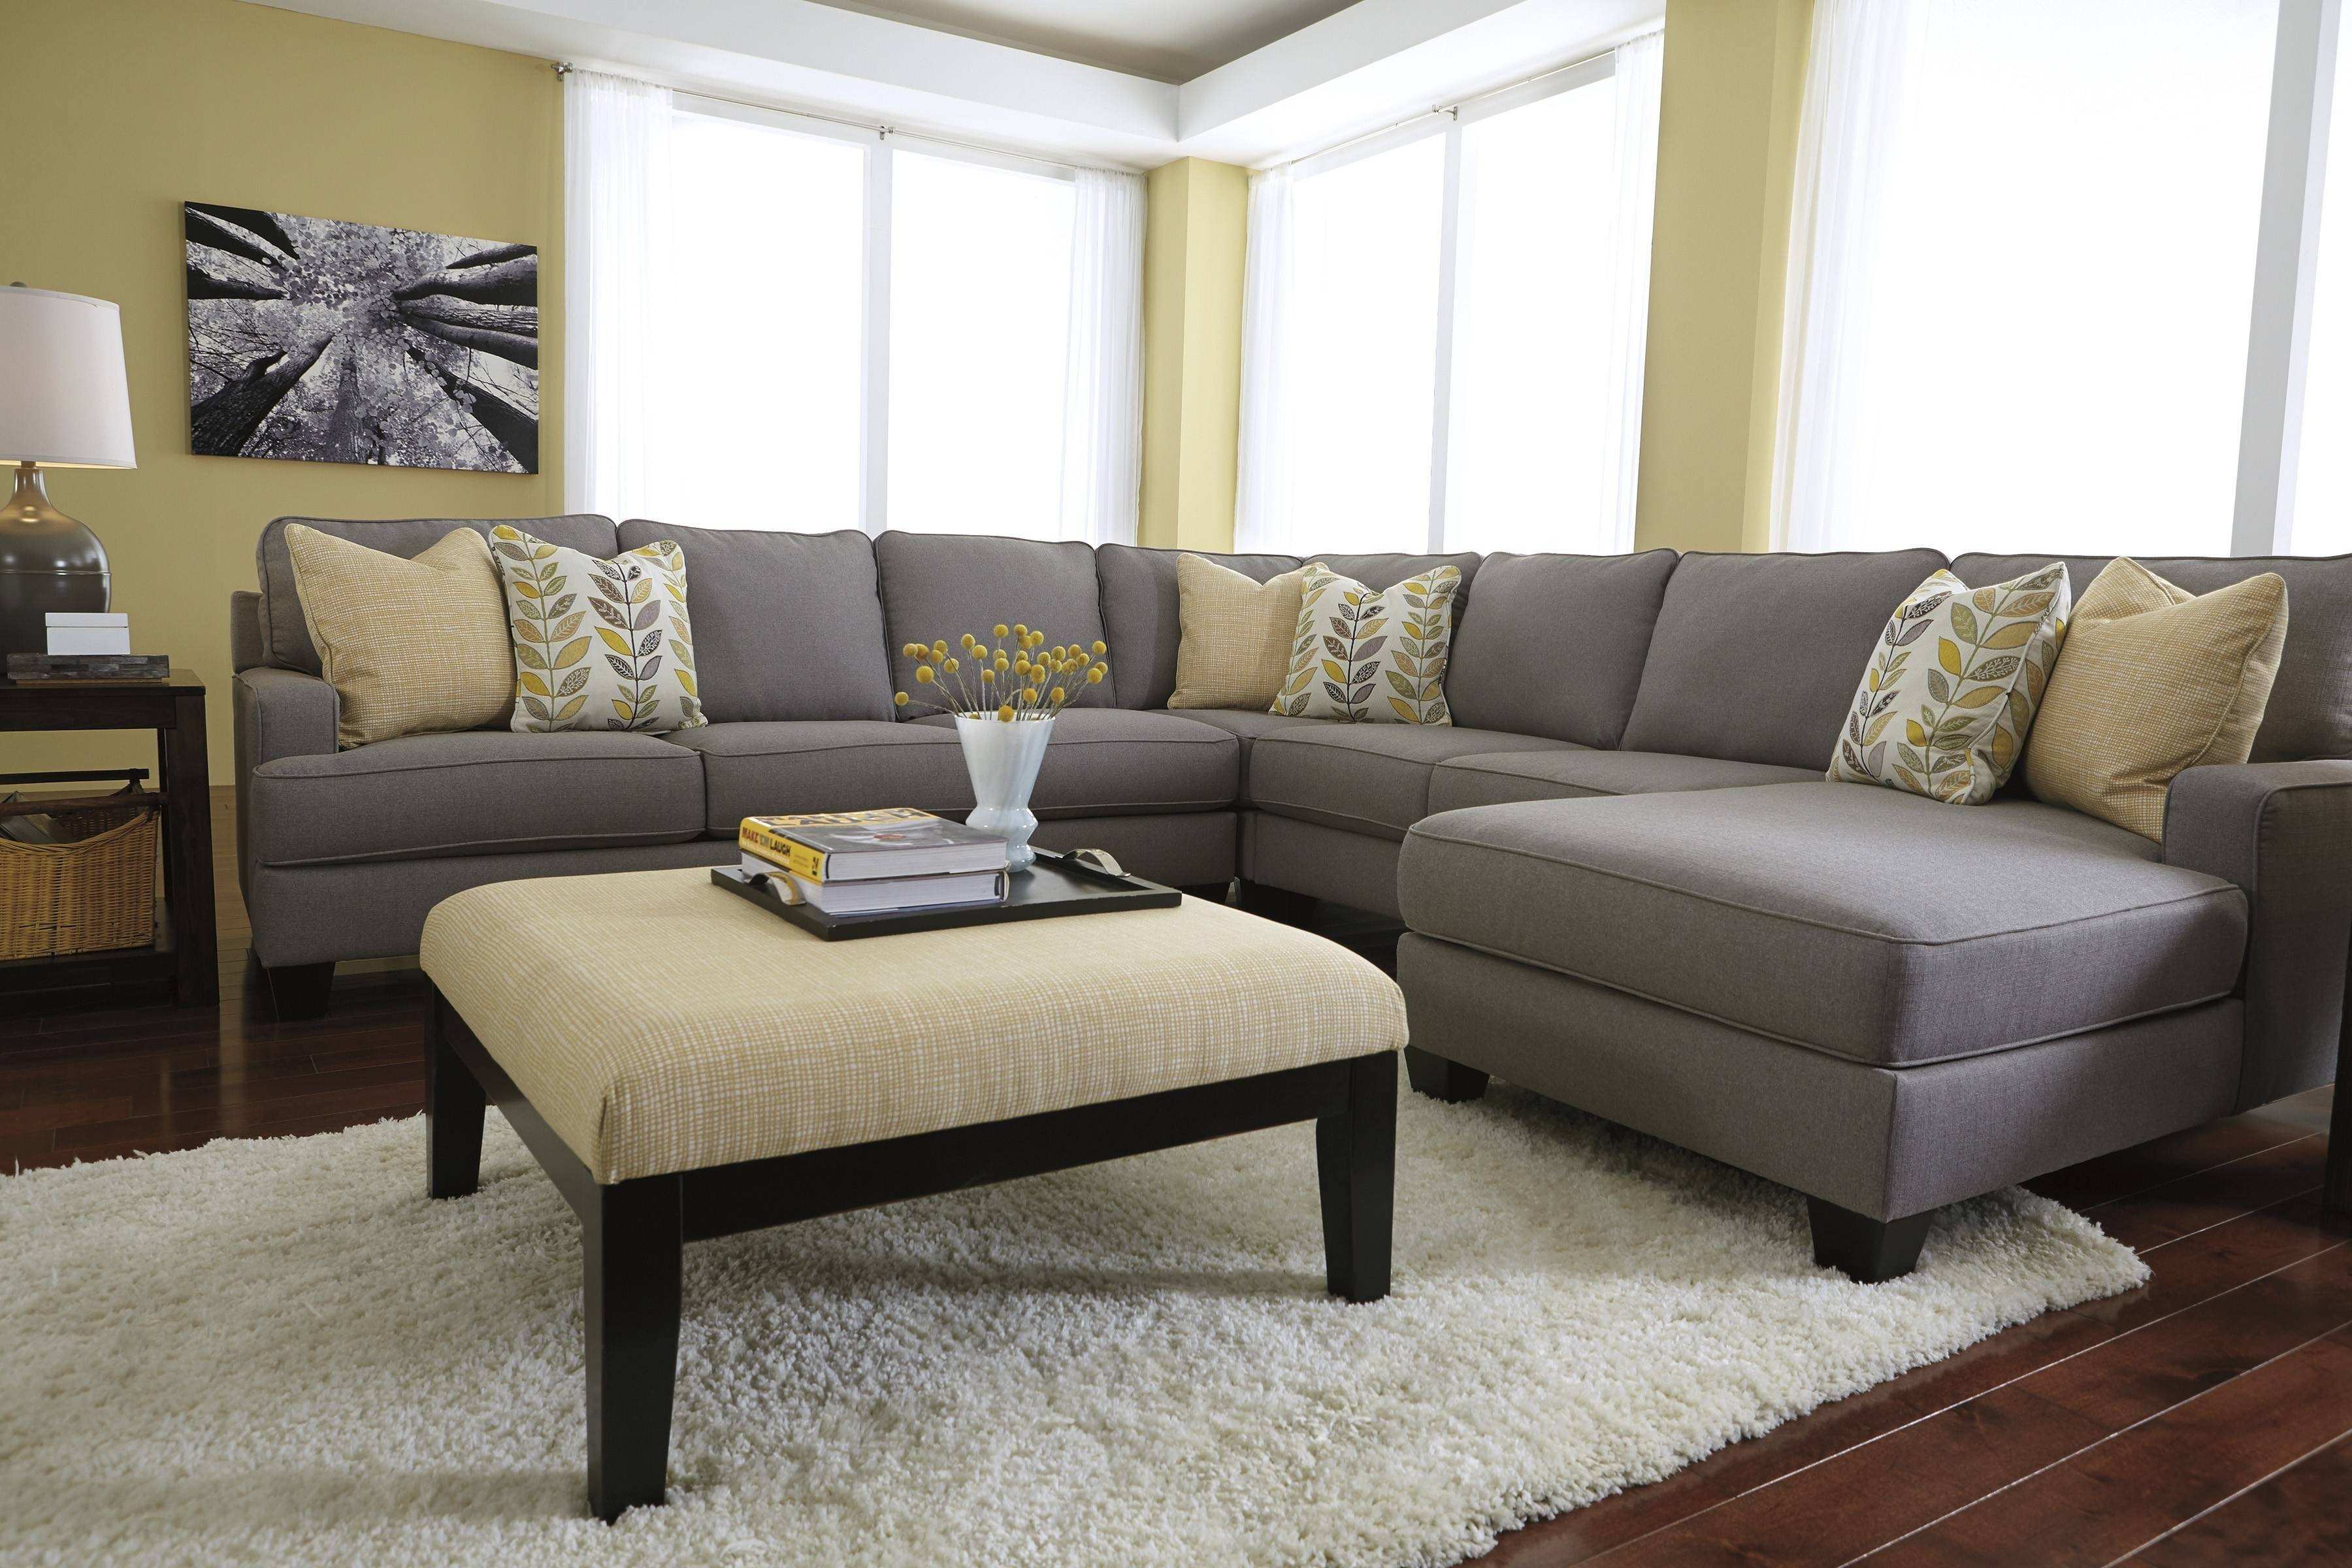 Huge Sectional Sofa.huge Sectional Couches And Pit Sectional For within Sectional Sofa With Large Ottoman (Image 16 of 30)